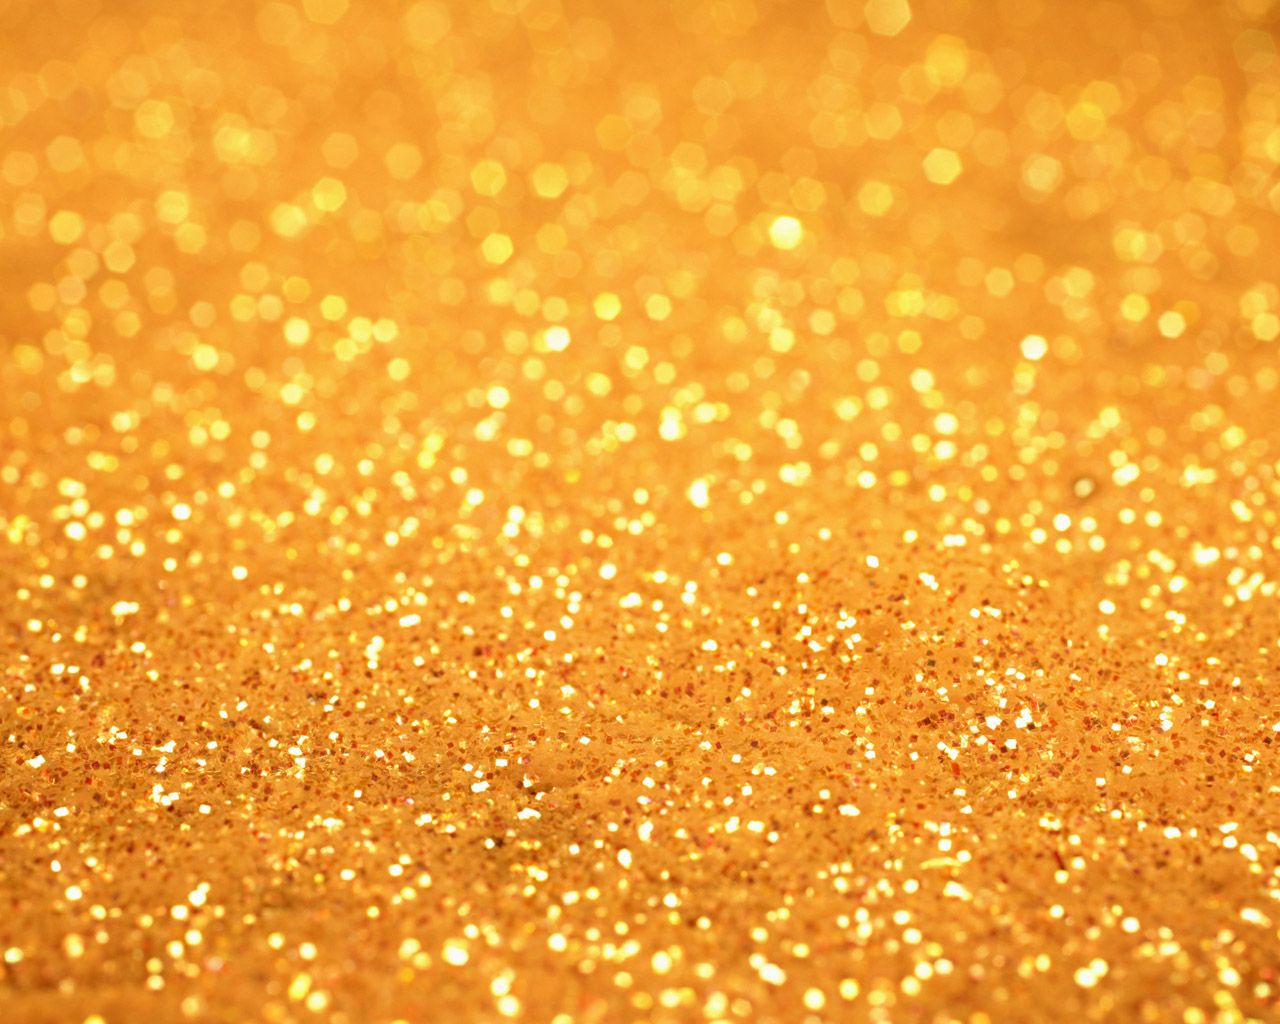 jewelry glitter wallpaper - photo #17